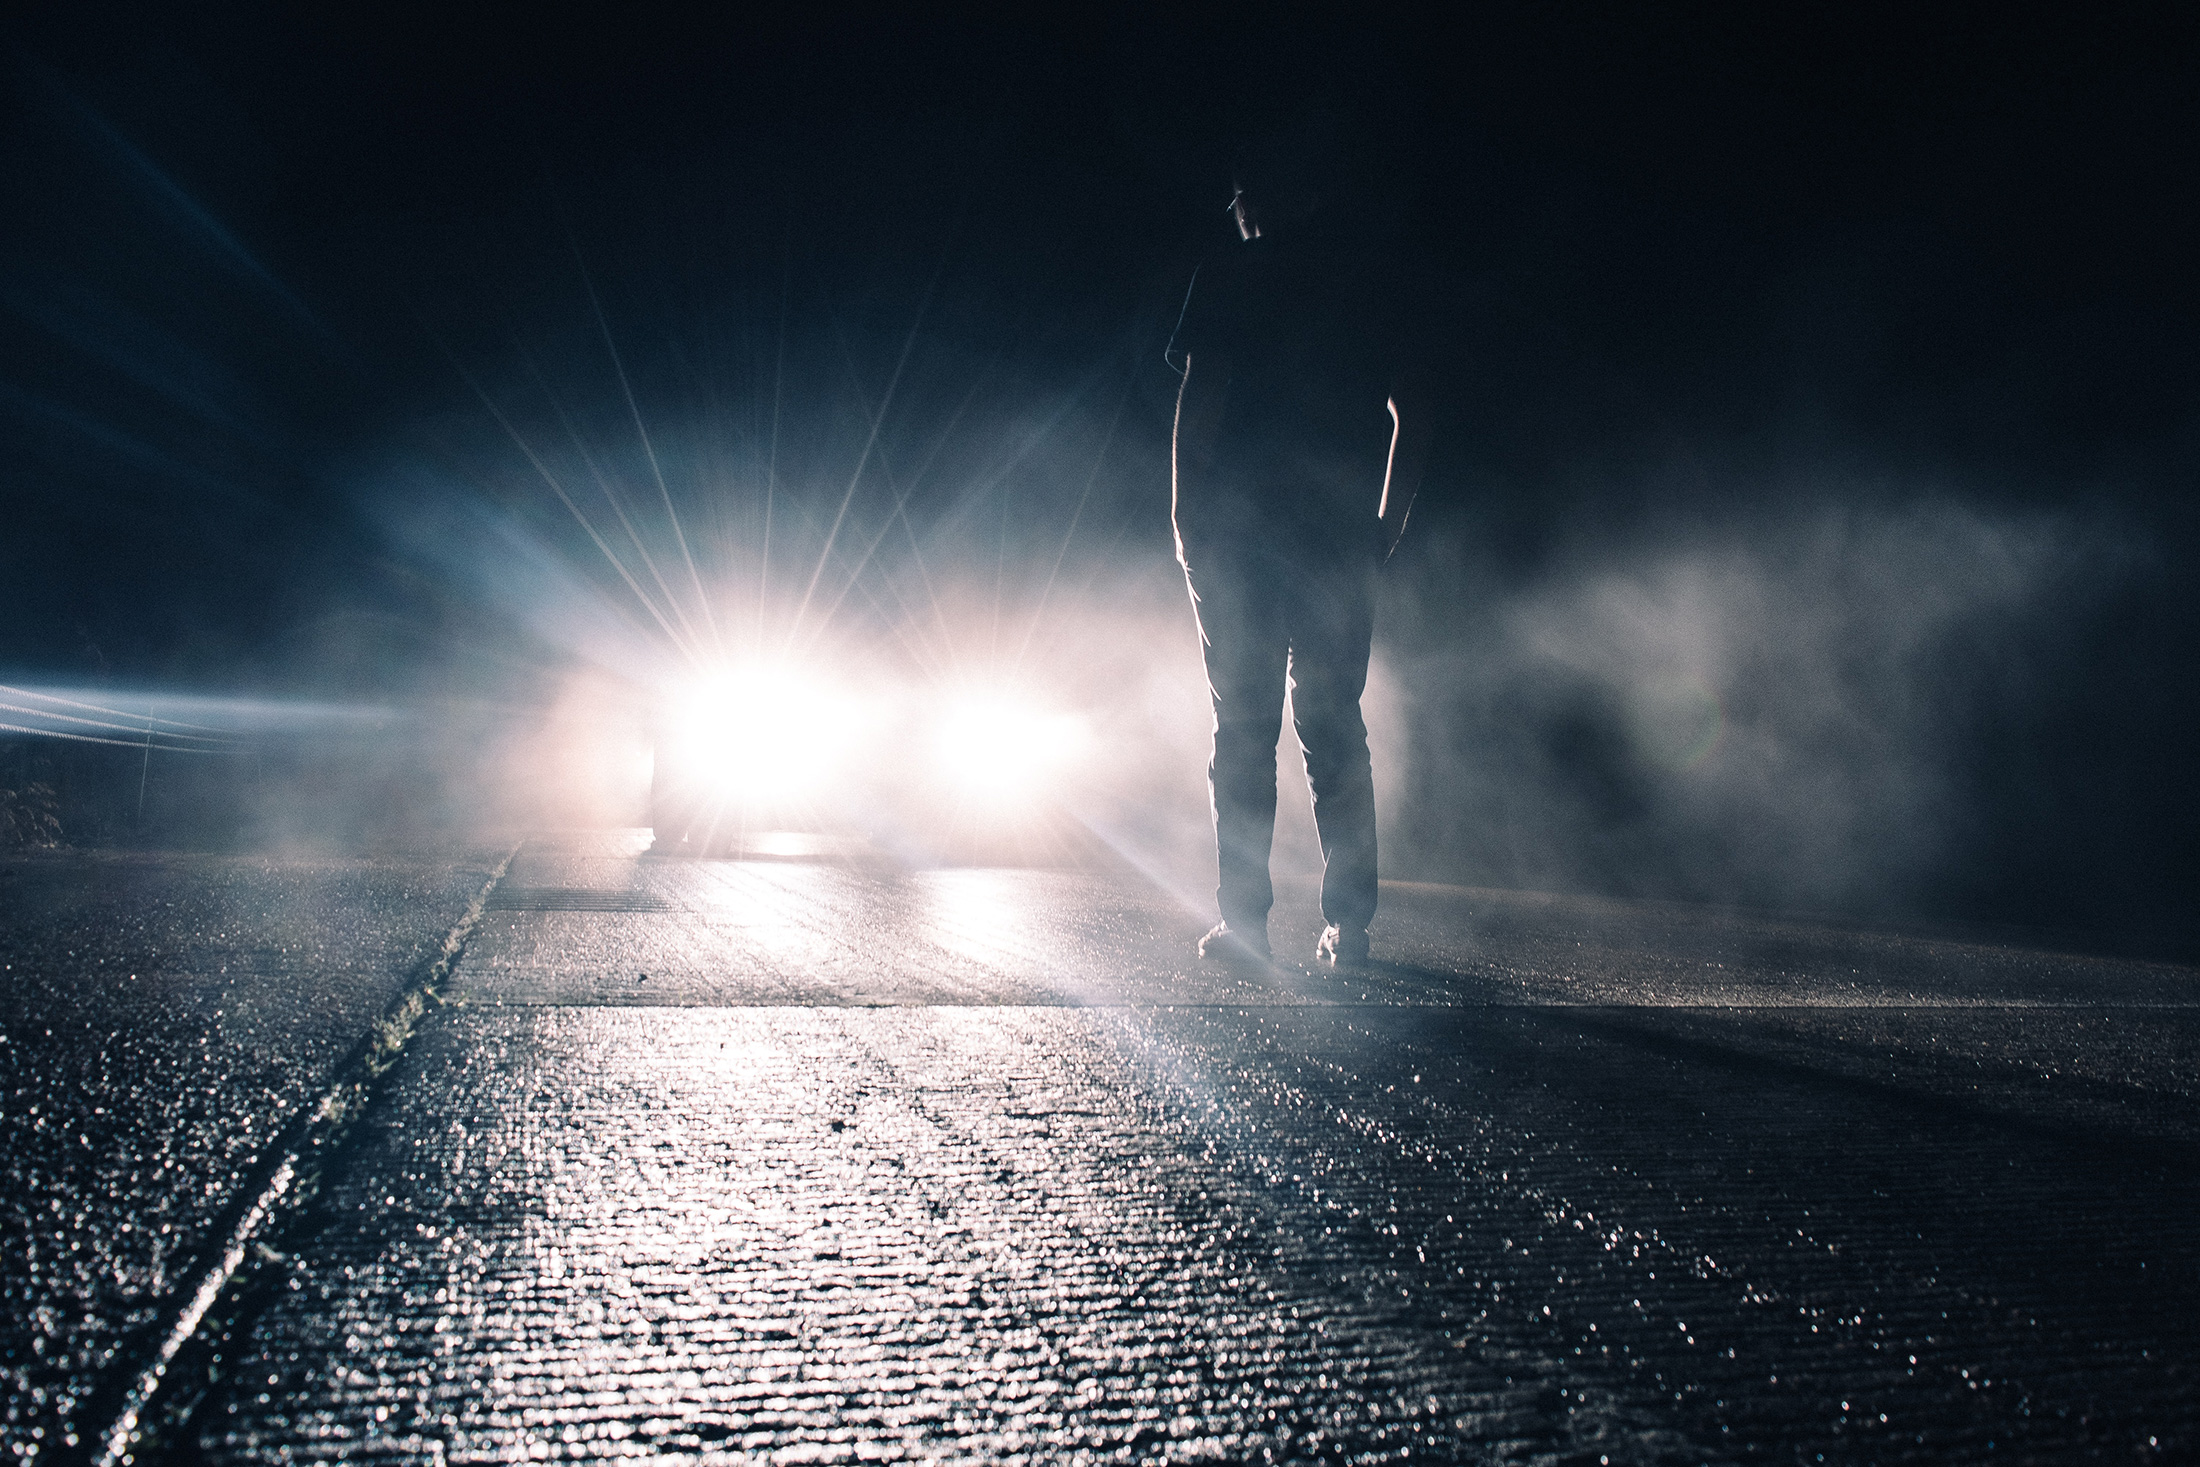 Young person standing in the middle of the road in front of an oncoming car